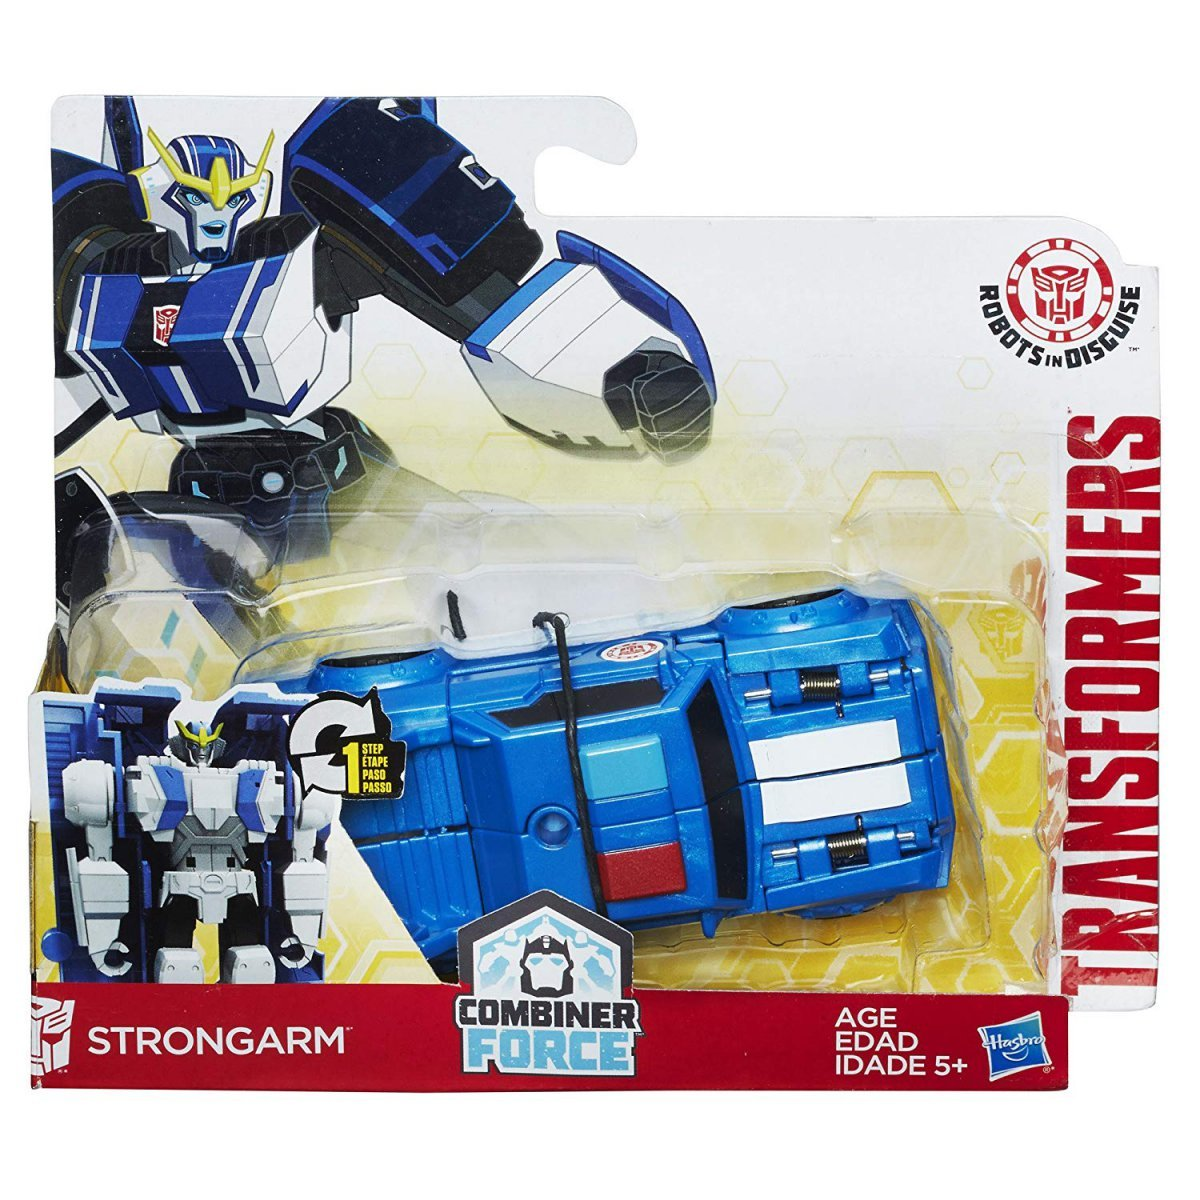 Transformers Combiner Force Strongarm - Hasbro C2338